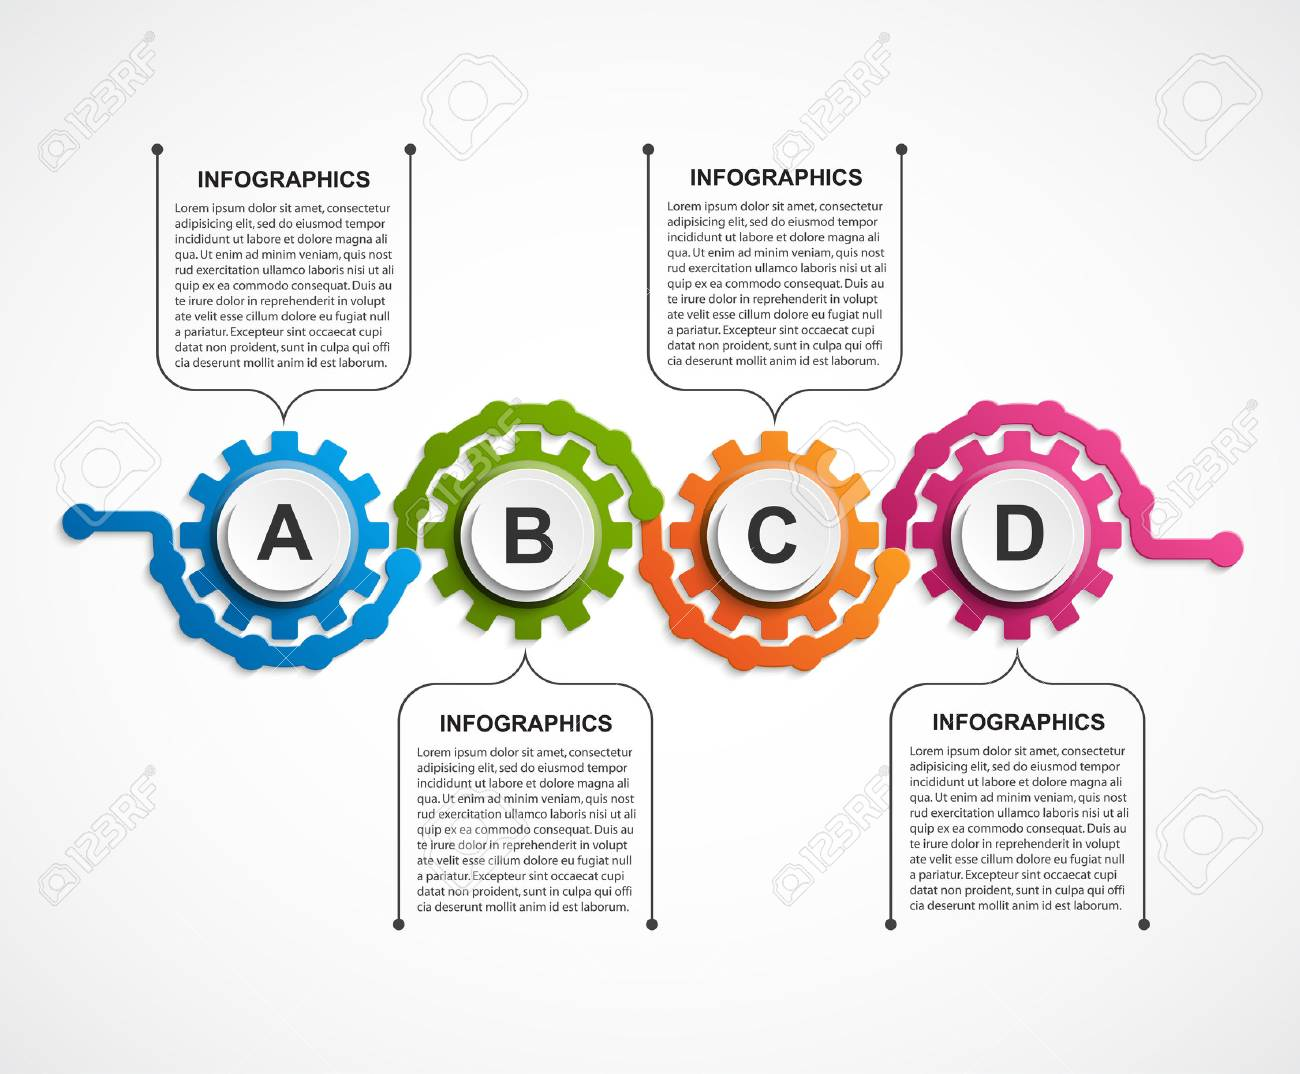 Abstract gears infographic. Design element. - 62993433